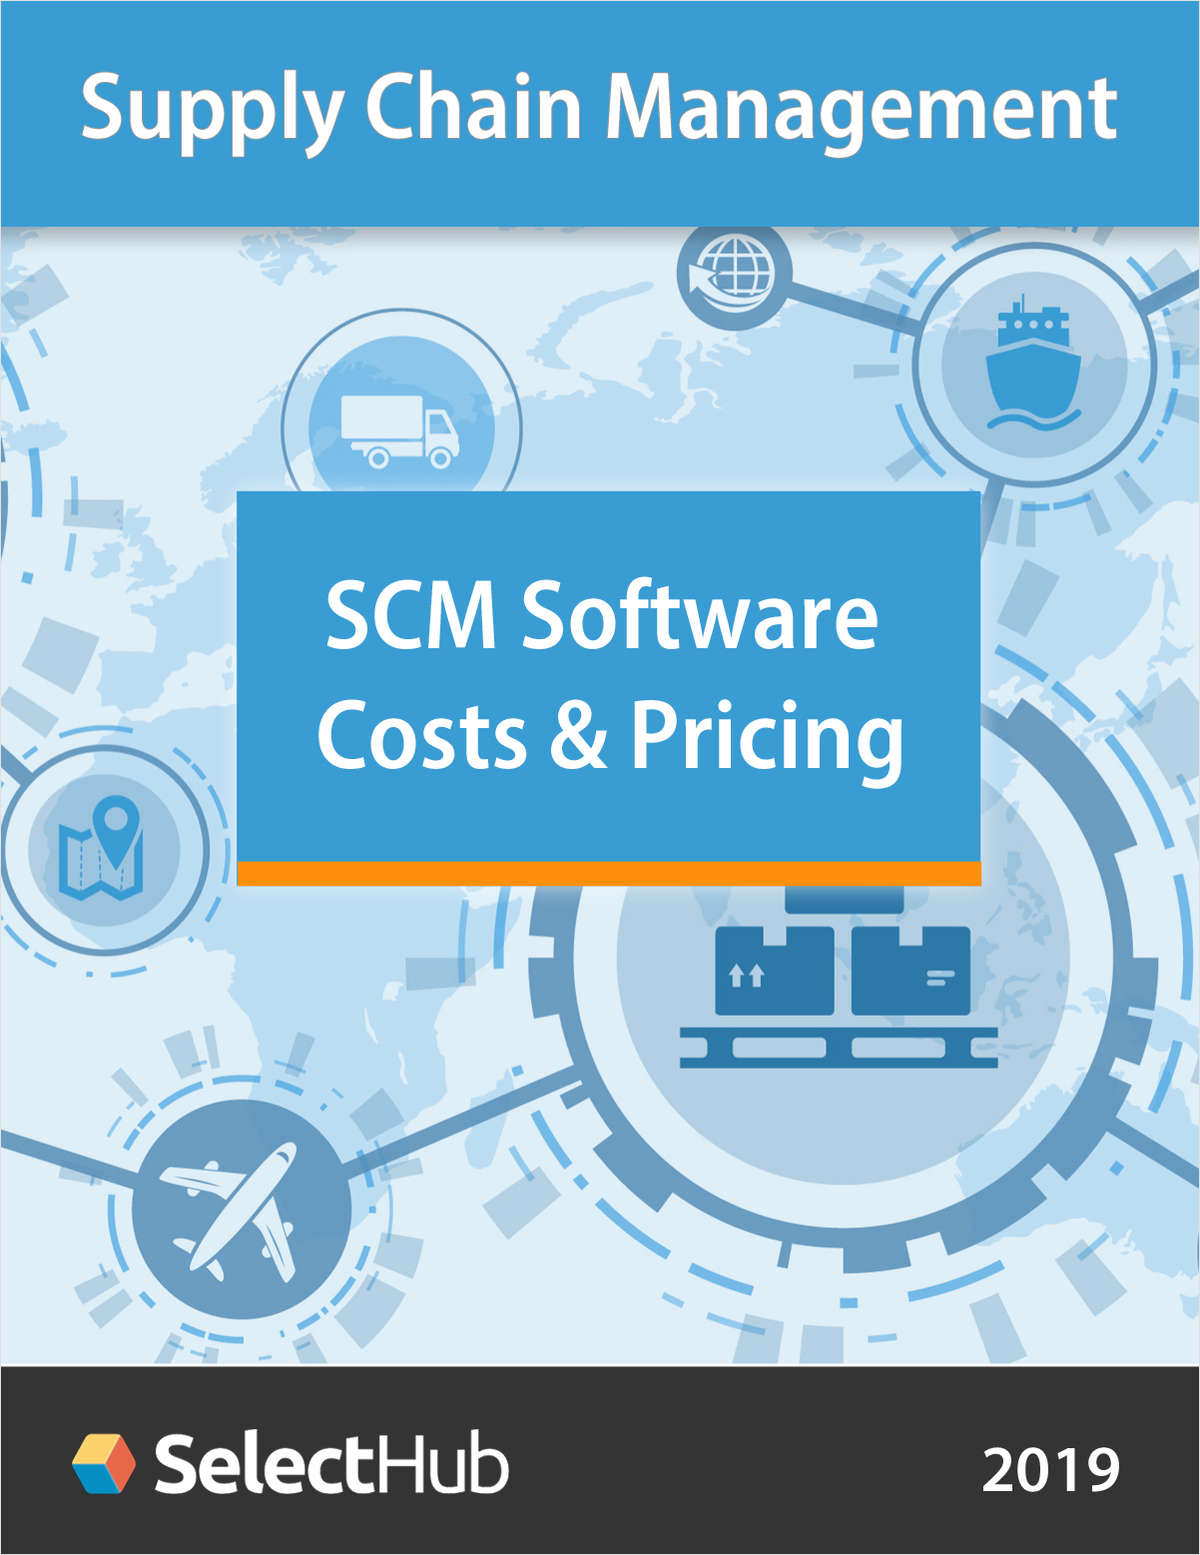 Compare SCM Software Systems Costs & Pricing